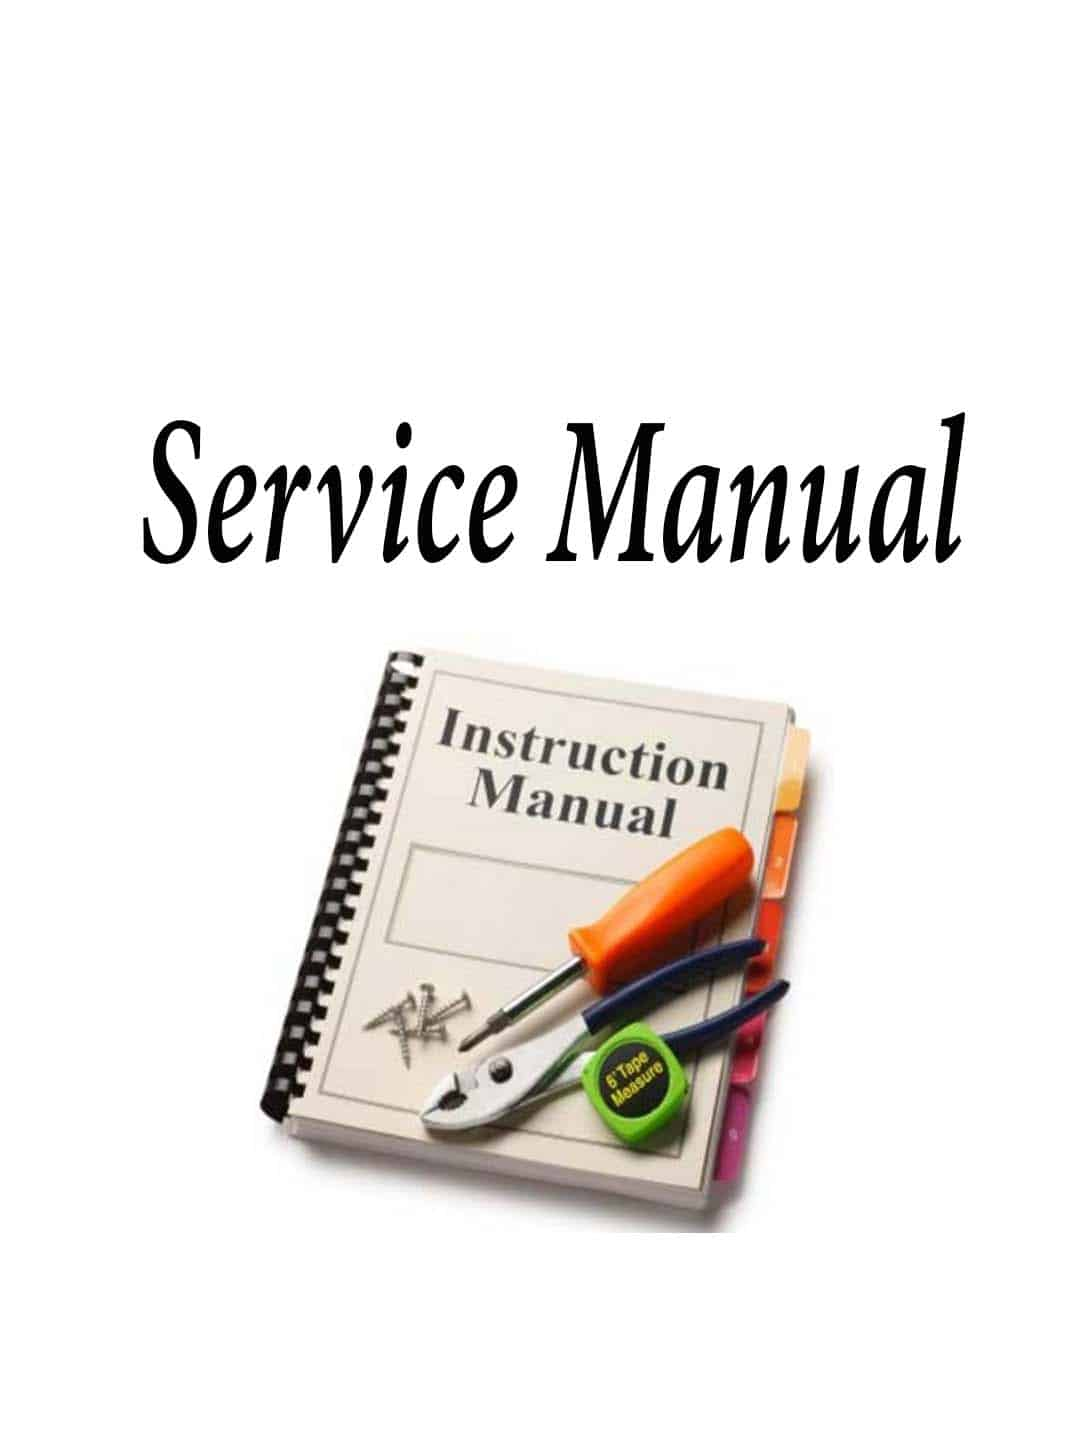 SM73005 - Midland Service Manual For 73-005